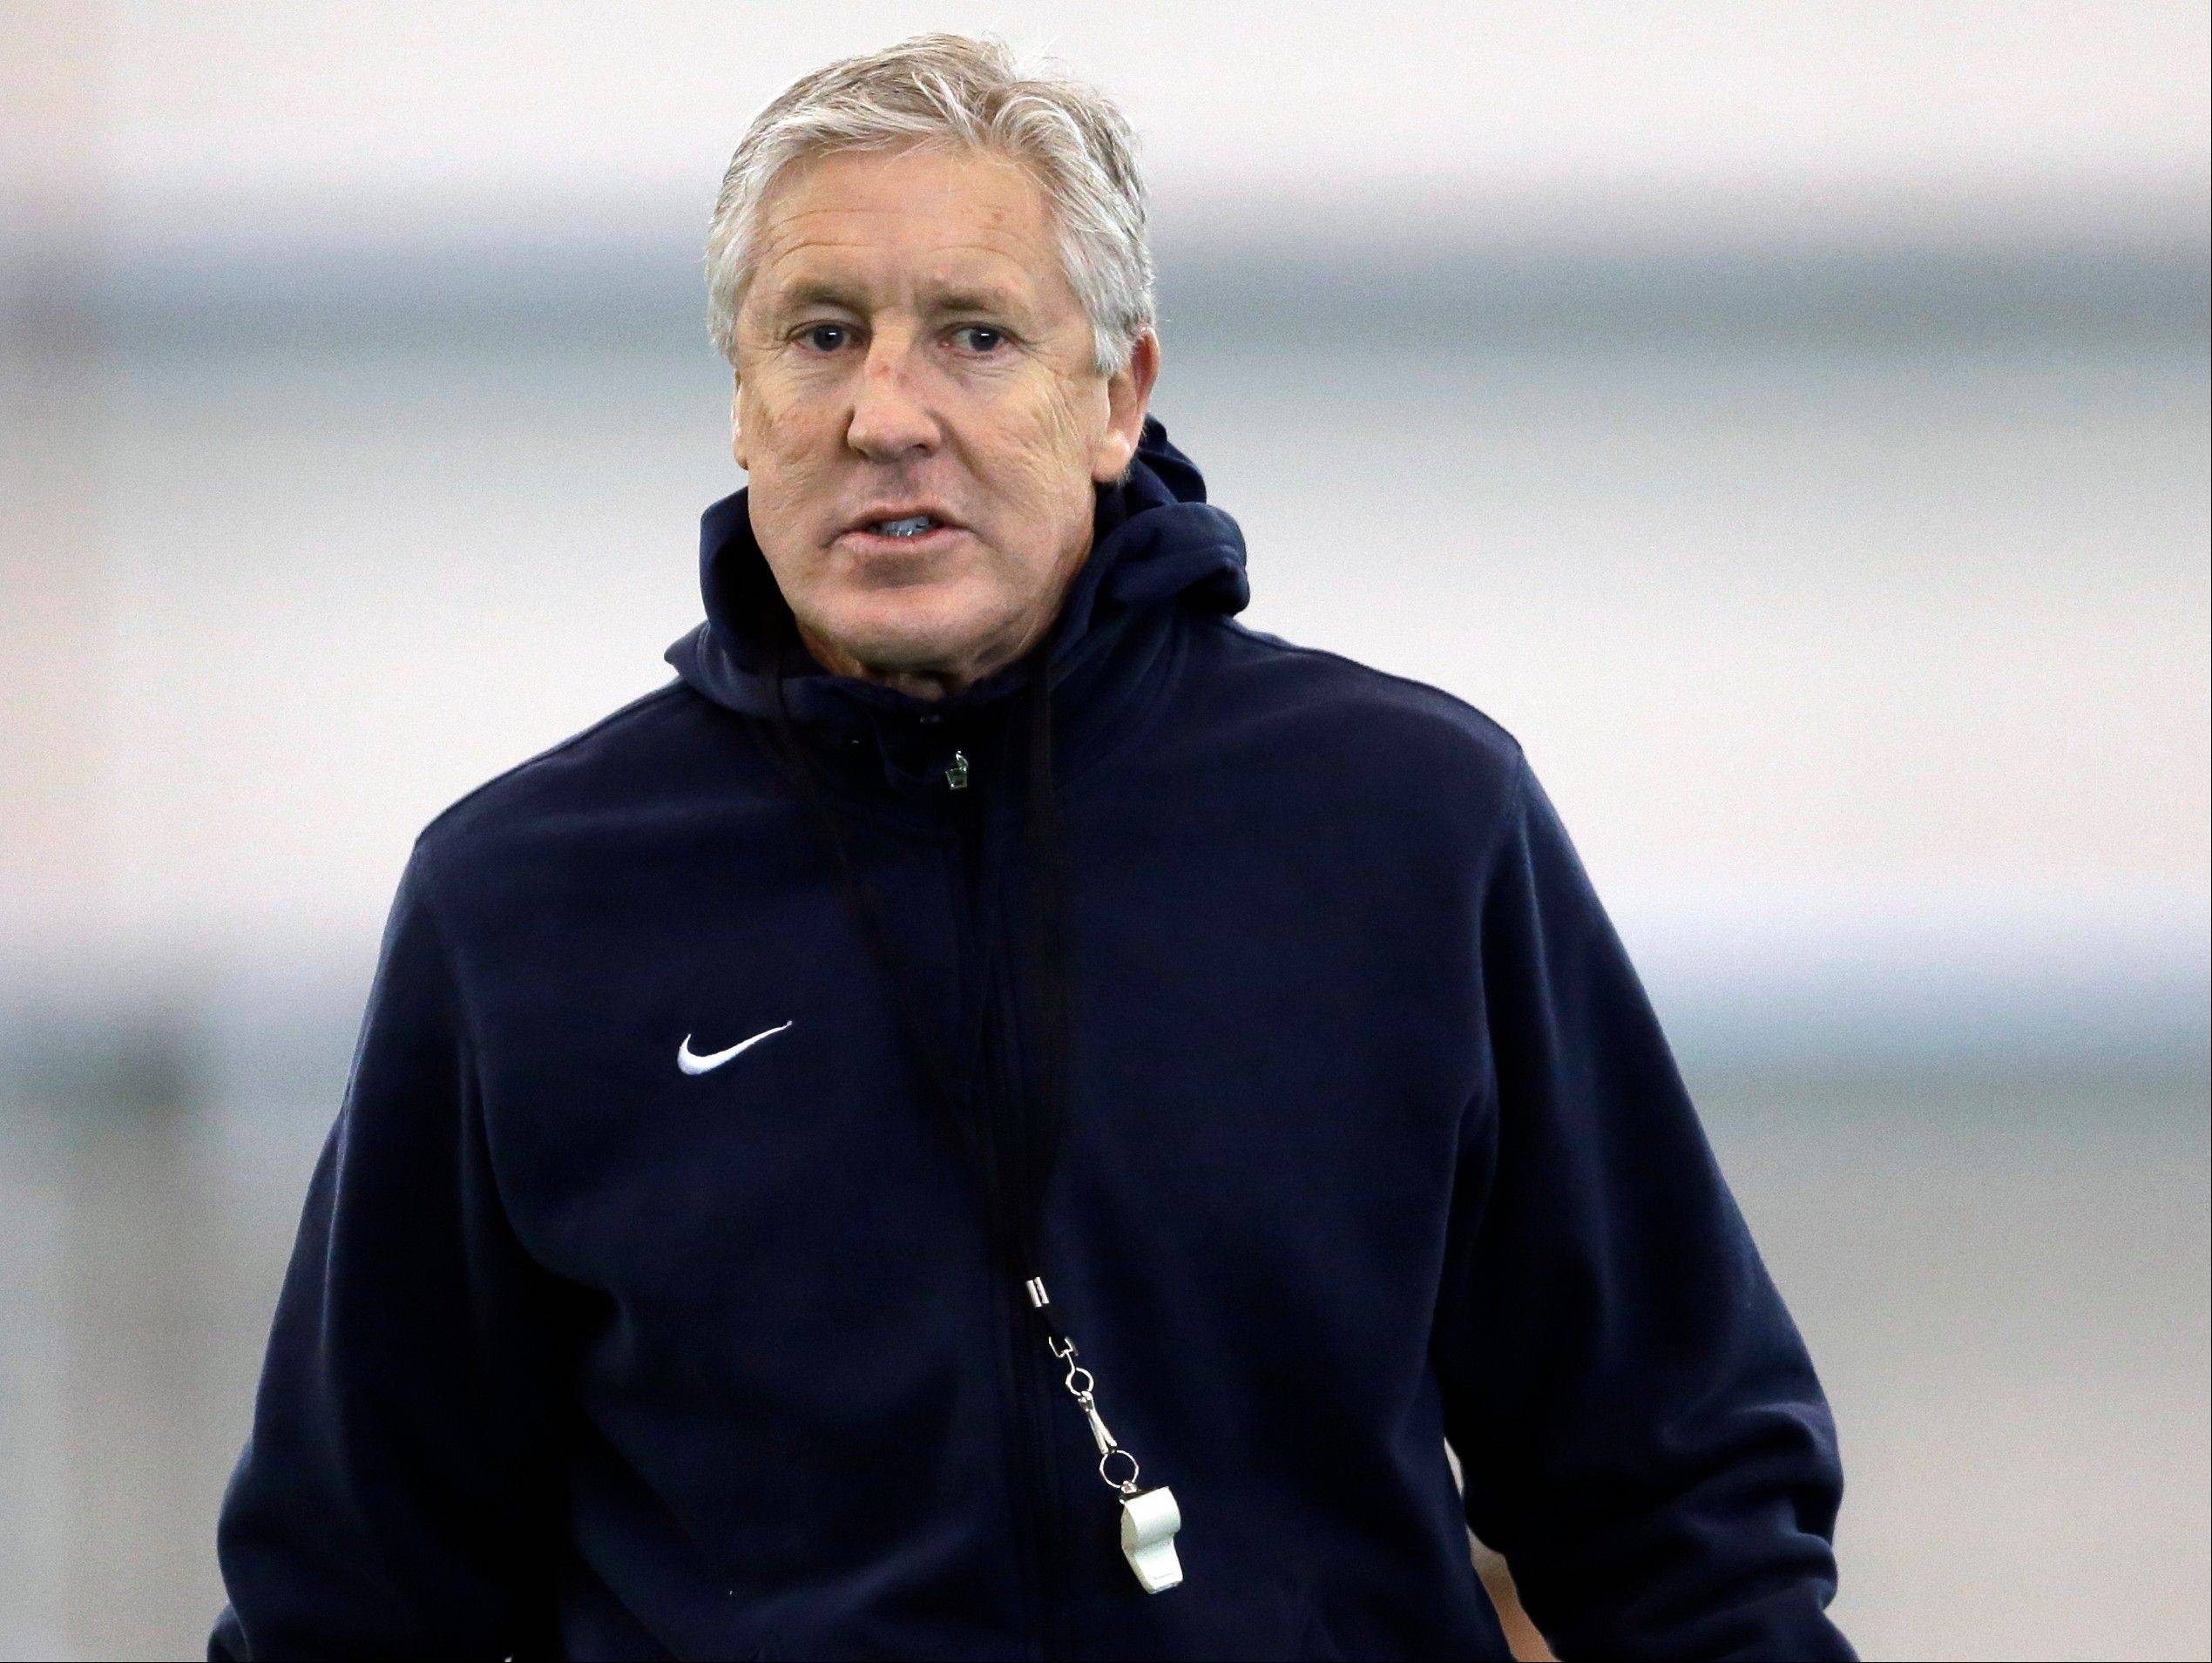 Seattle Seahawks head coach Pete Carroll watches his team warm up for NFL football practice Wednesday, Jan. 29, 2014, in East Rutherford, N.J. The Seahawks and the Denver Broncos are scheduled to play in the Super Bowl XLVIII football game Sunday, Feb. 2, 2014. (AP Photo/Jeff Roberson)